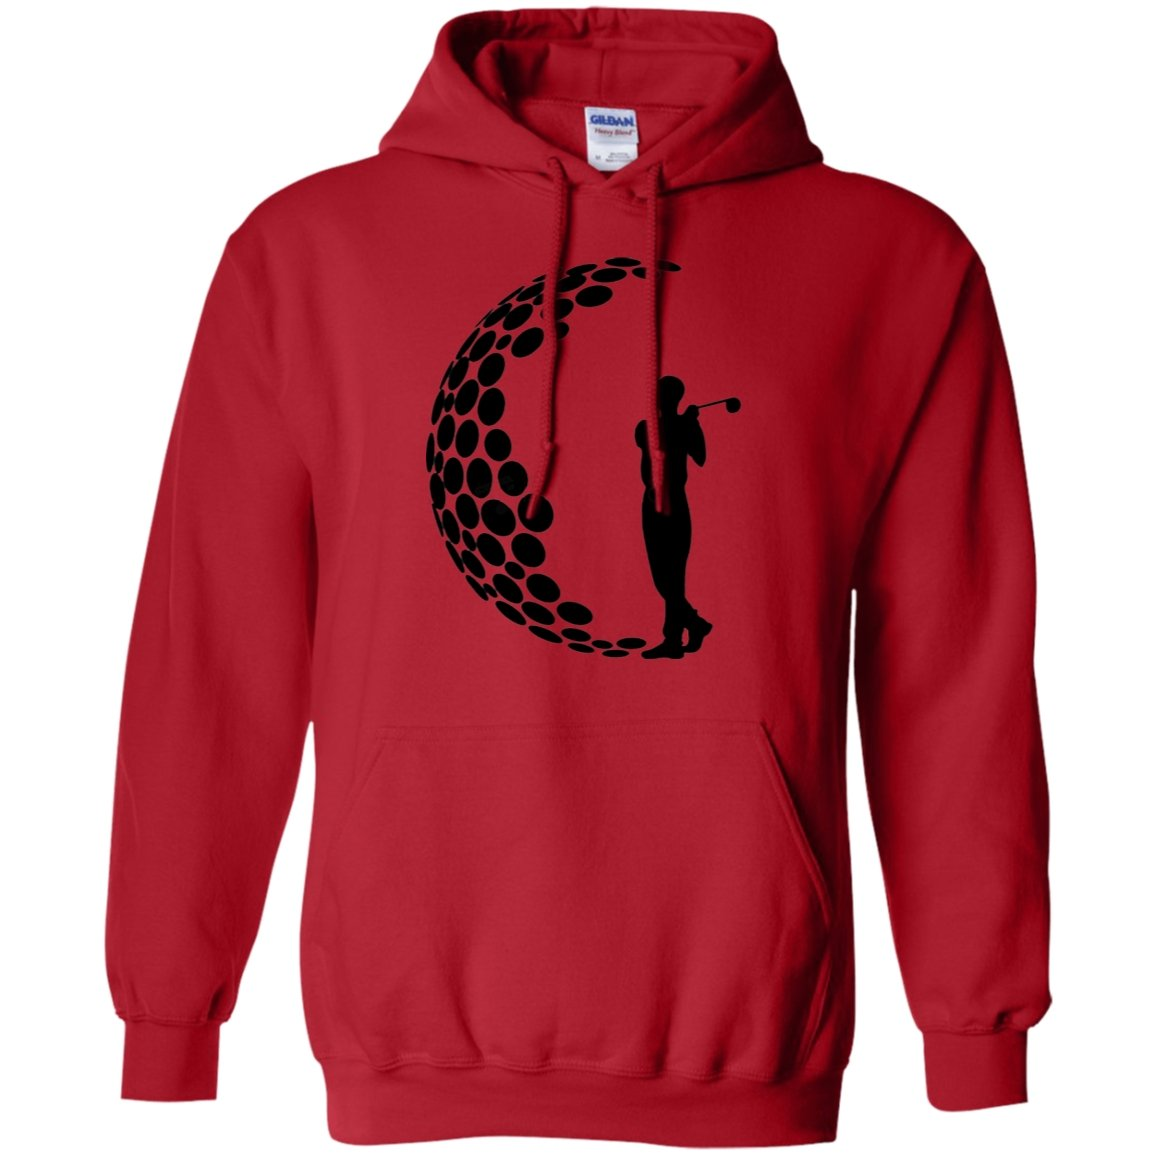 Golf Lover Pullover Hoodie 8 oz.